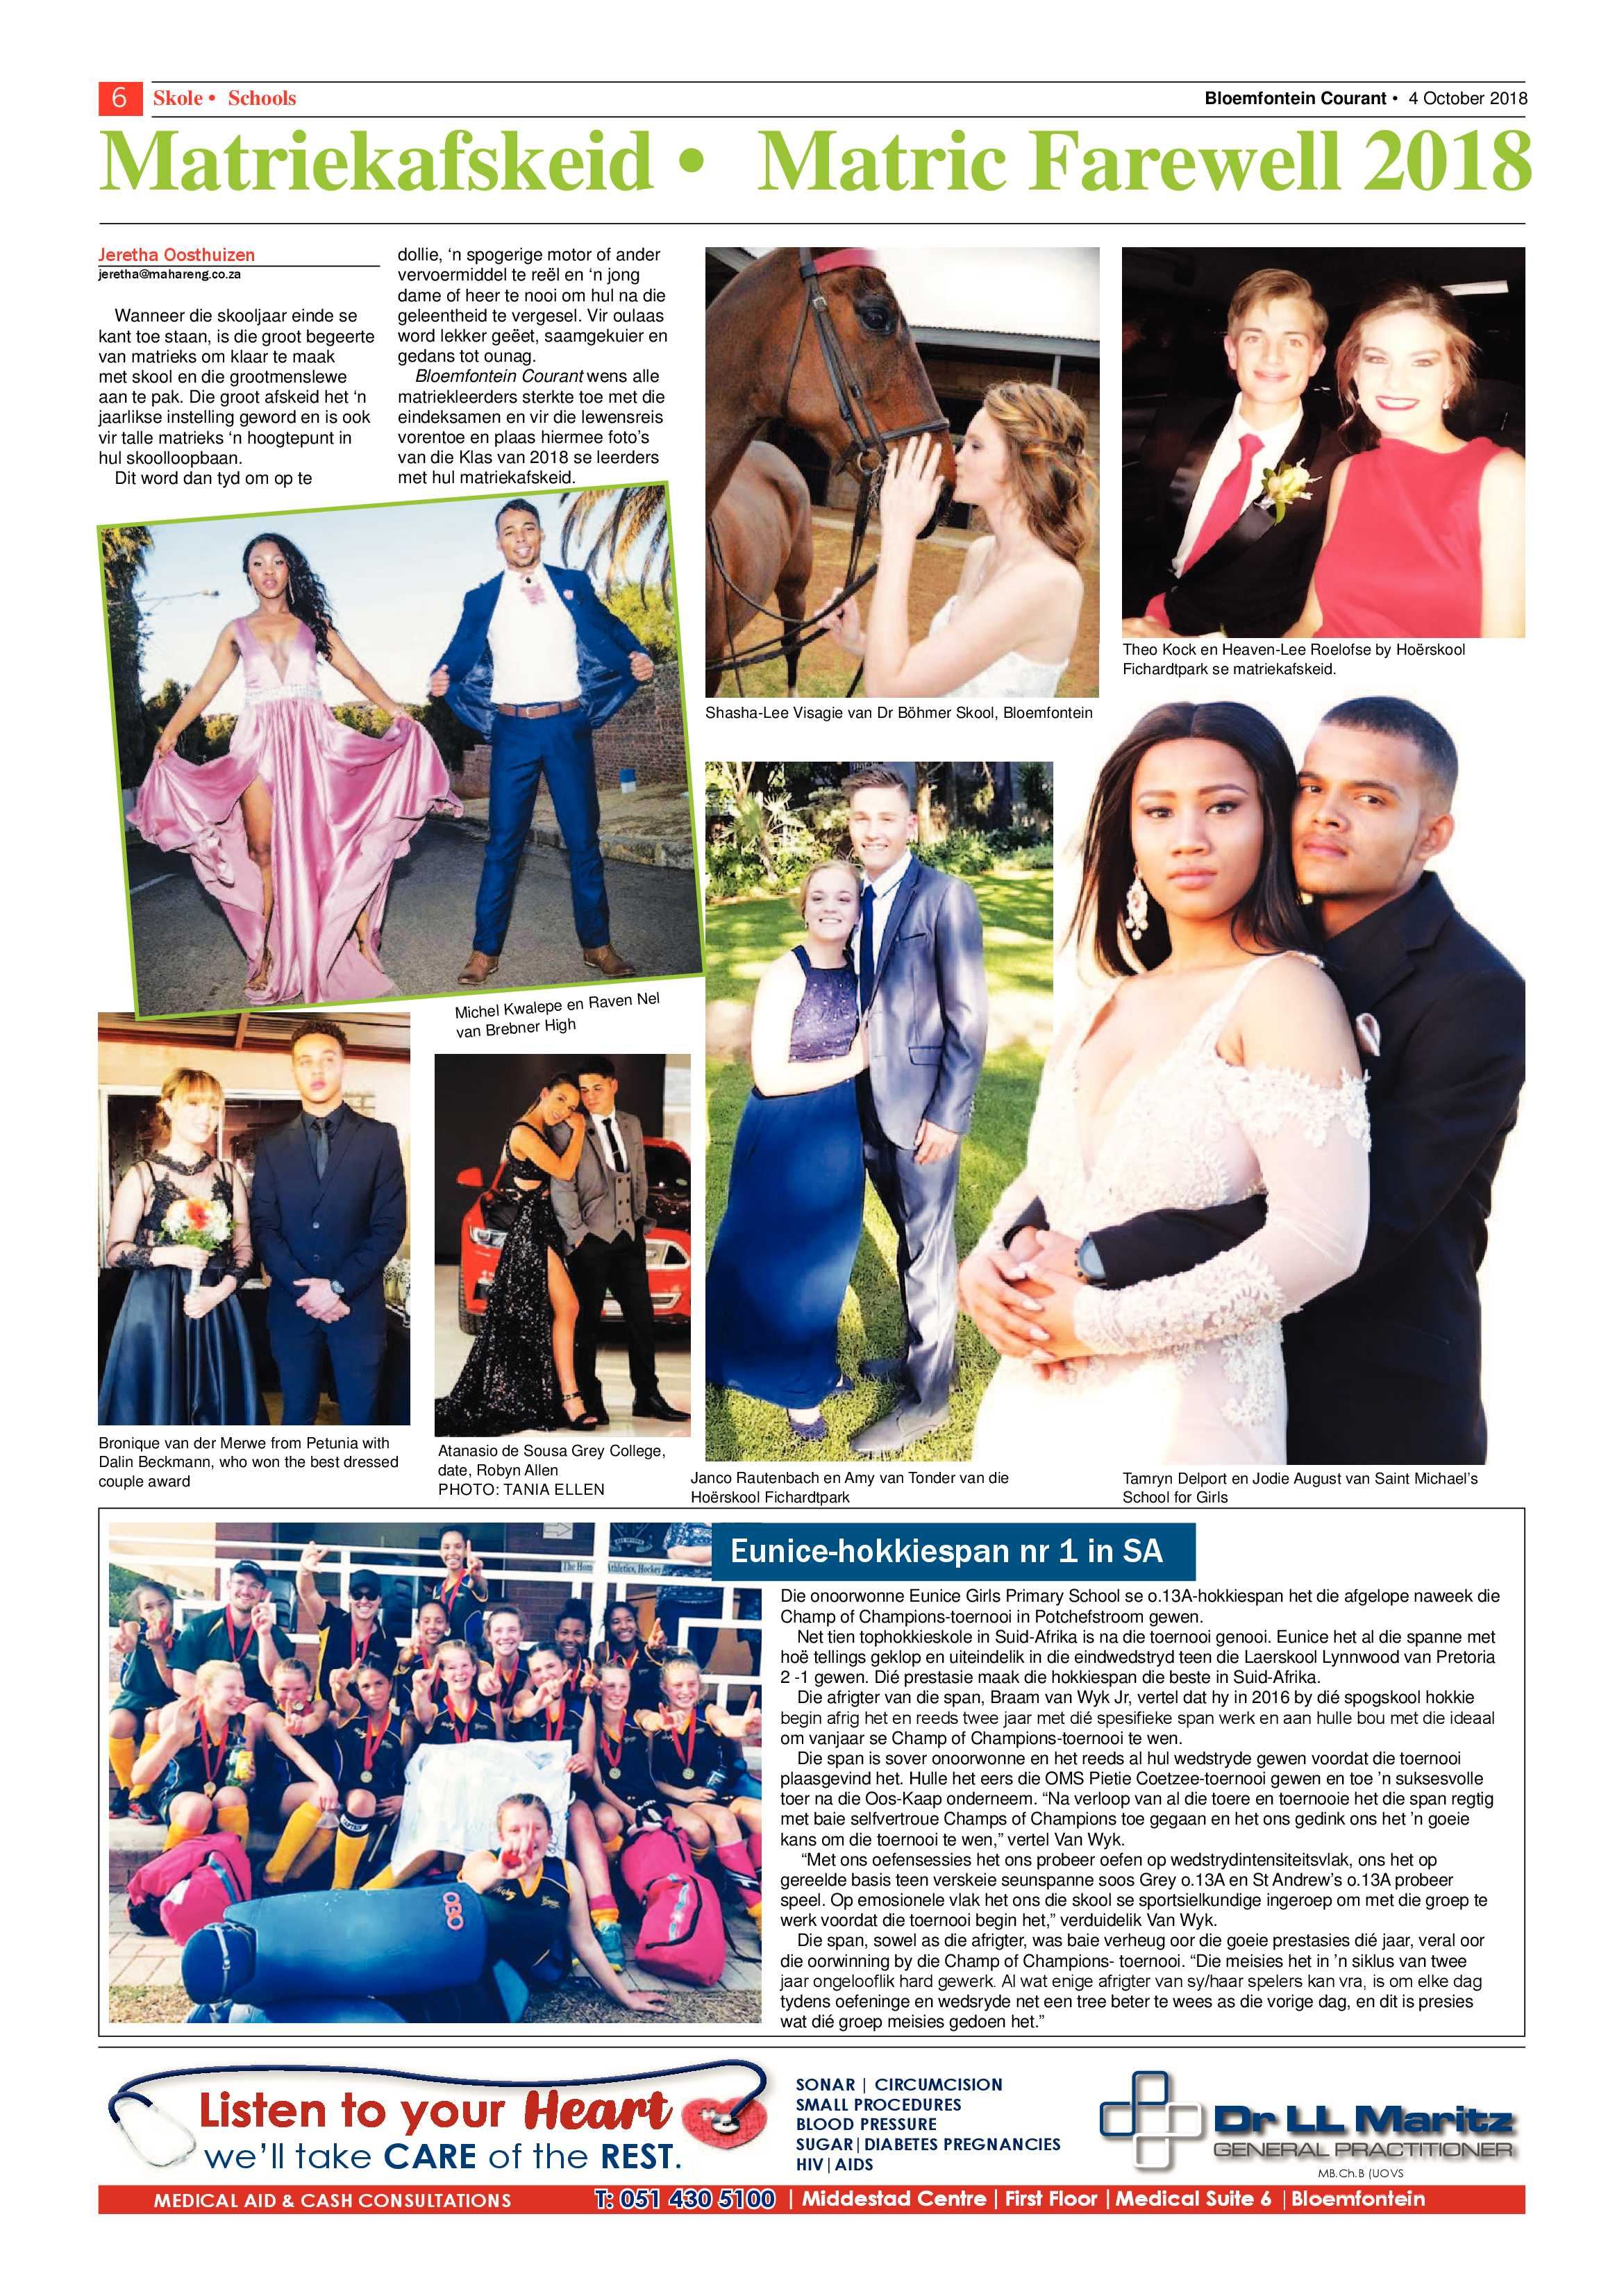 courant-04-october-2018-epapers-page-6